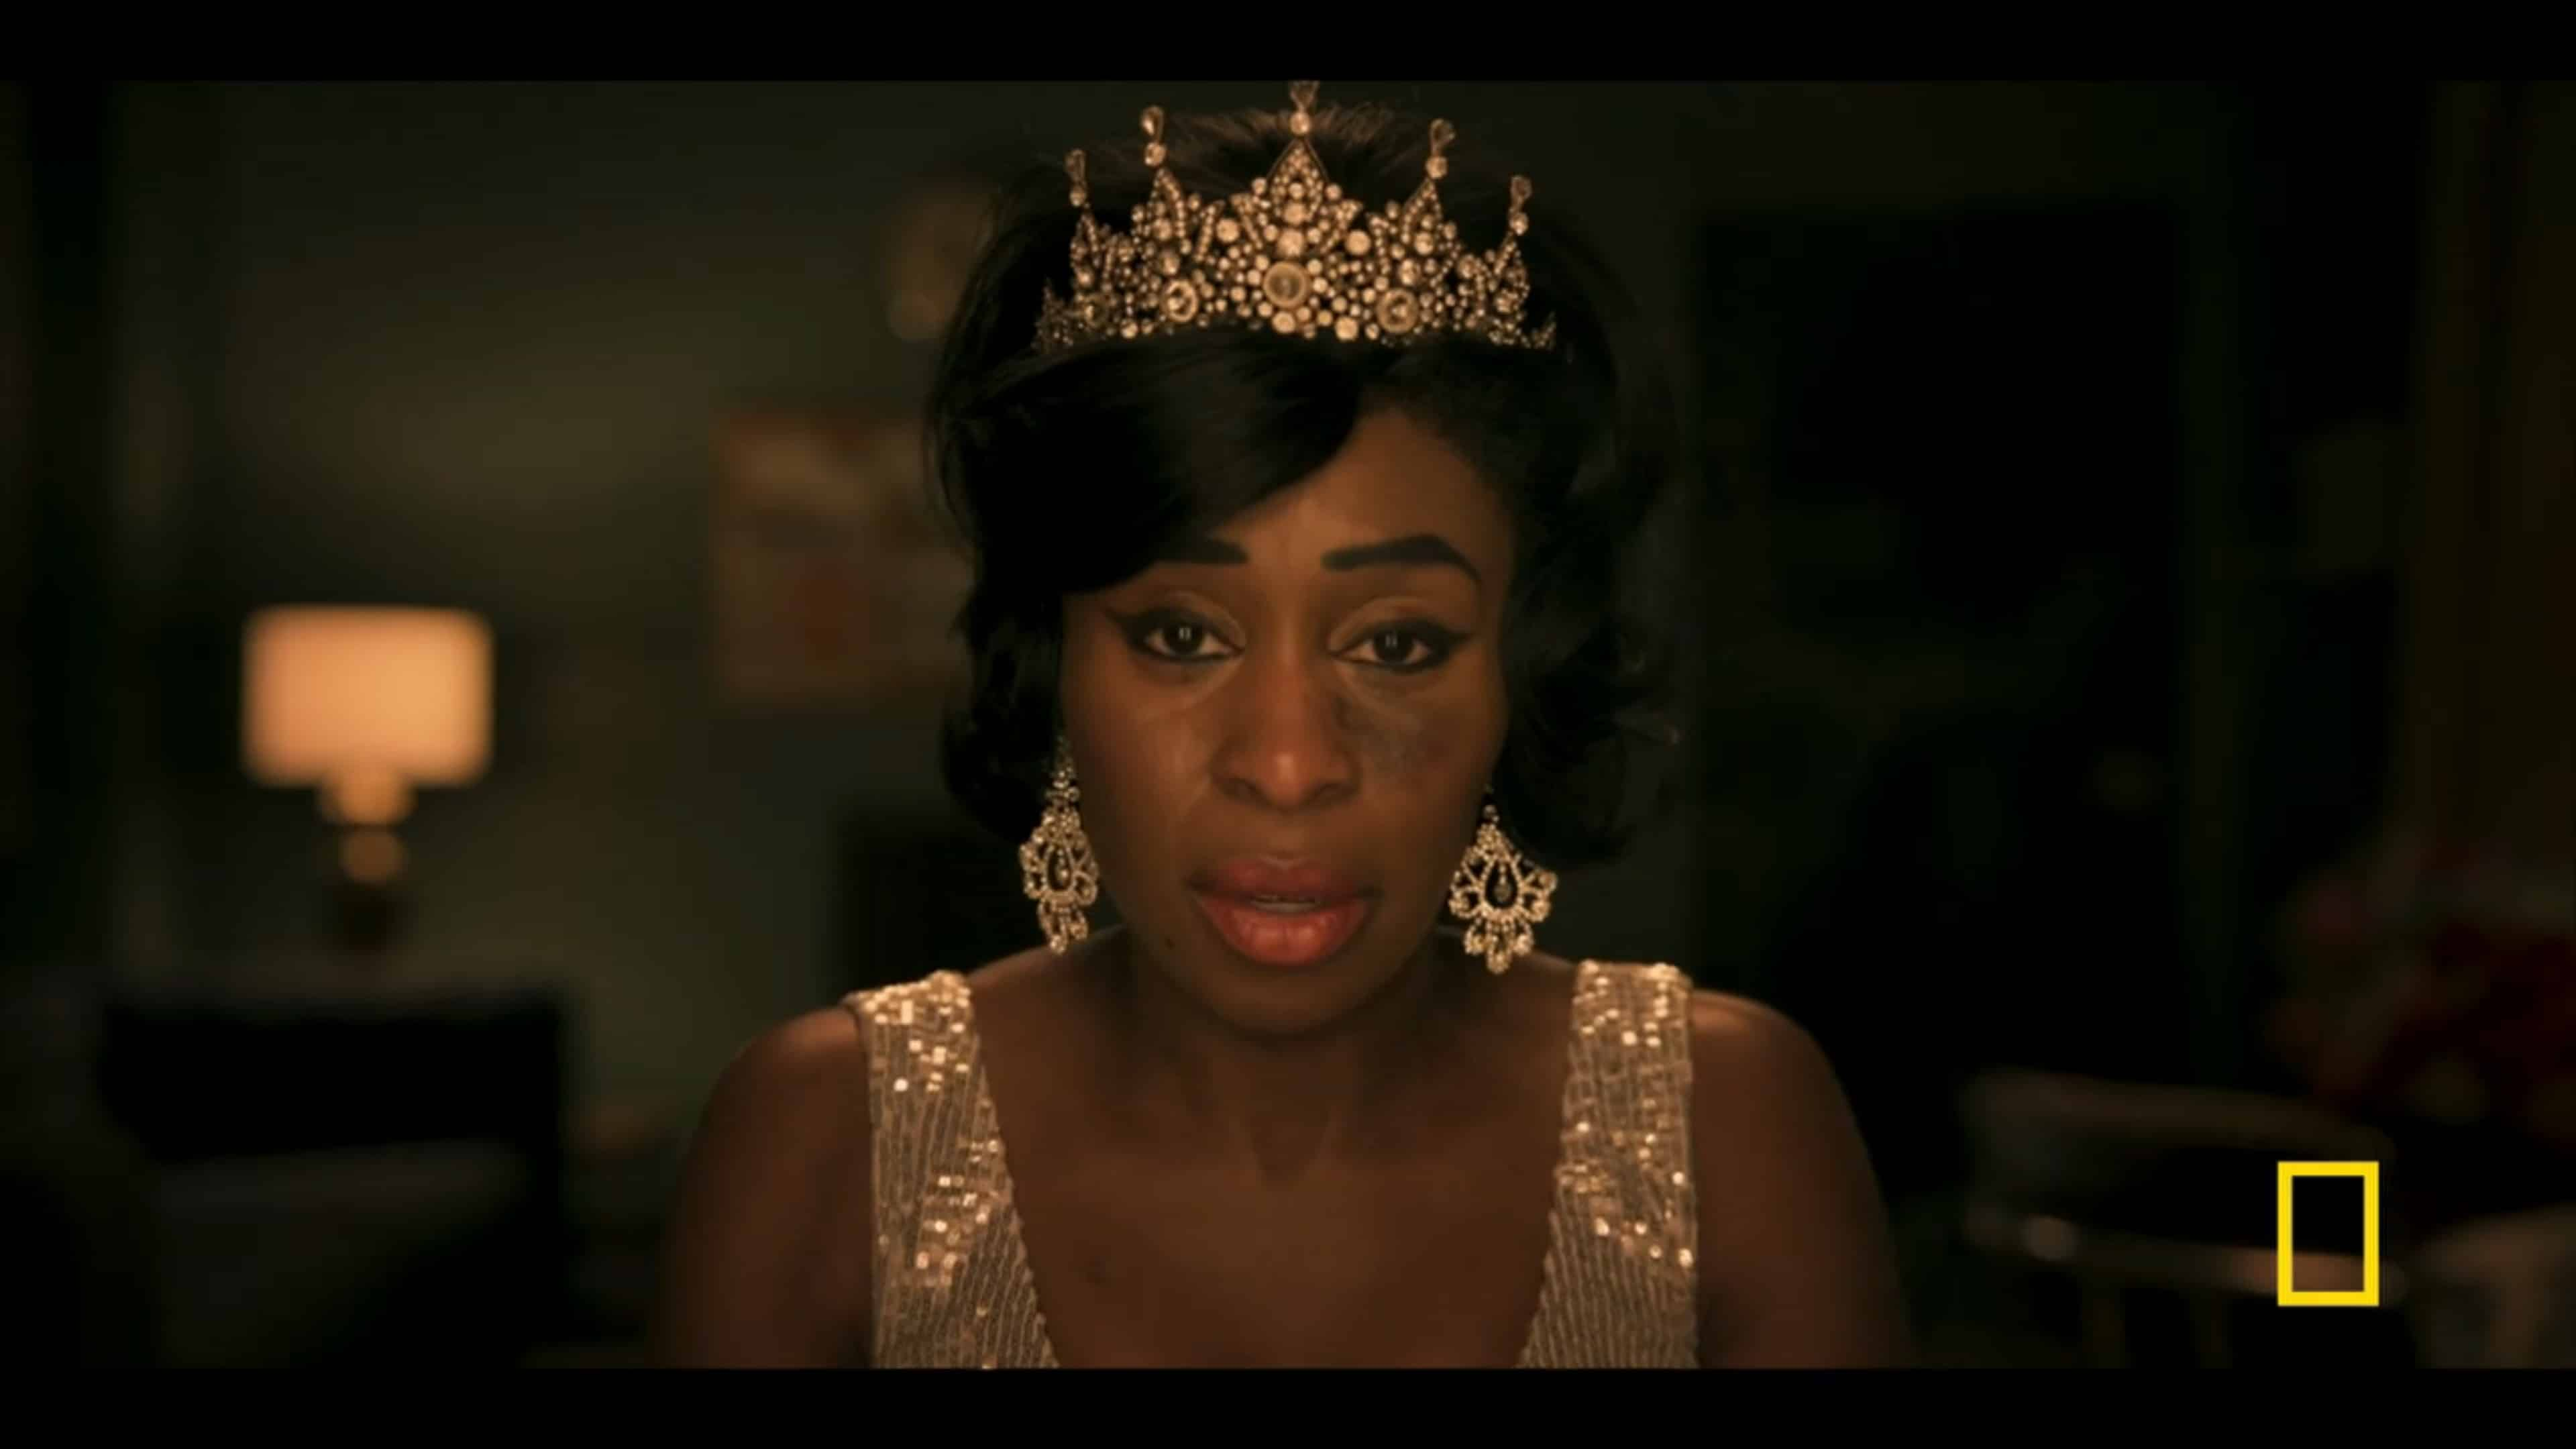 Aretha (Cynthia Erivo) after being crowned the Queen of Soul, with a bruise on her face caused by her husband